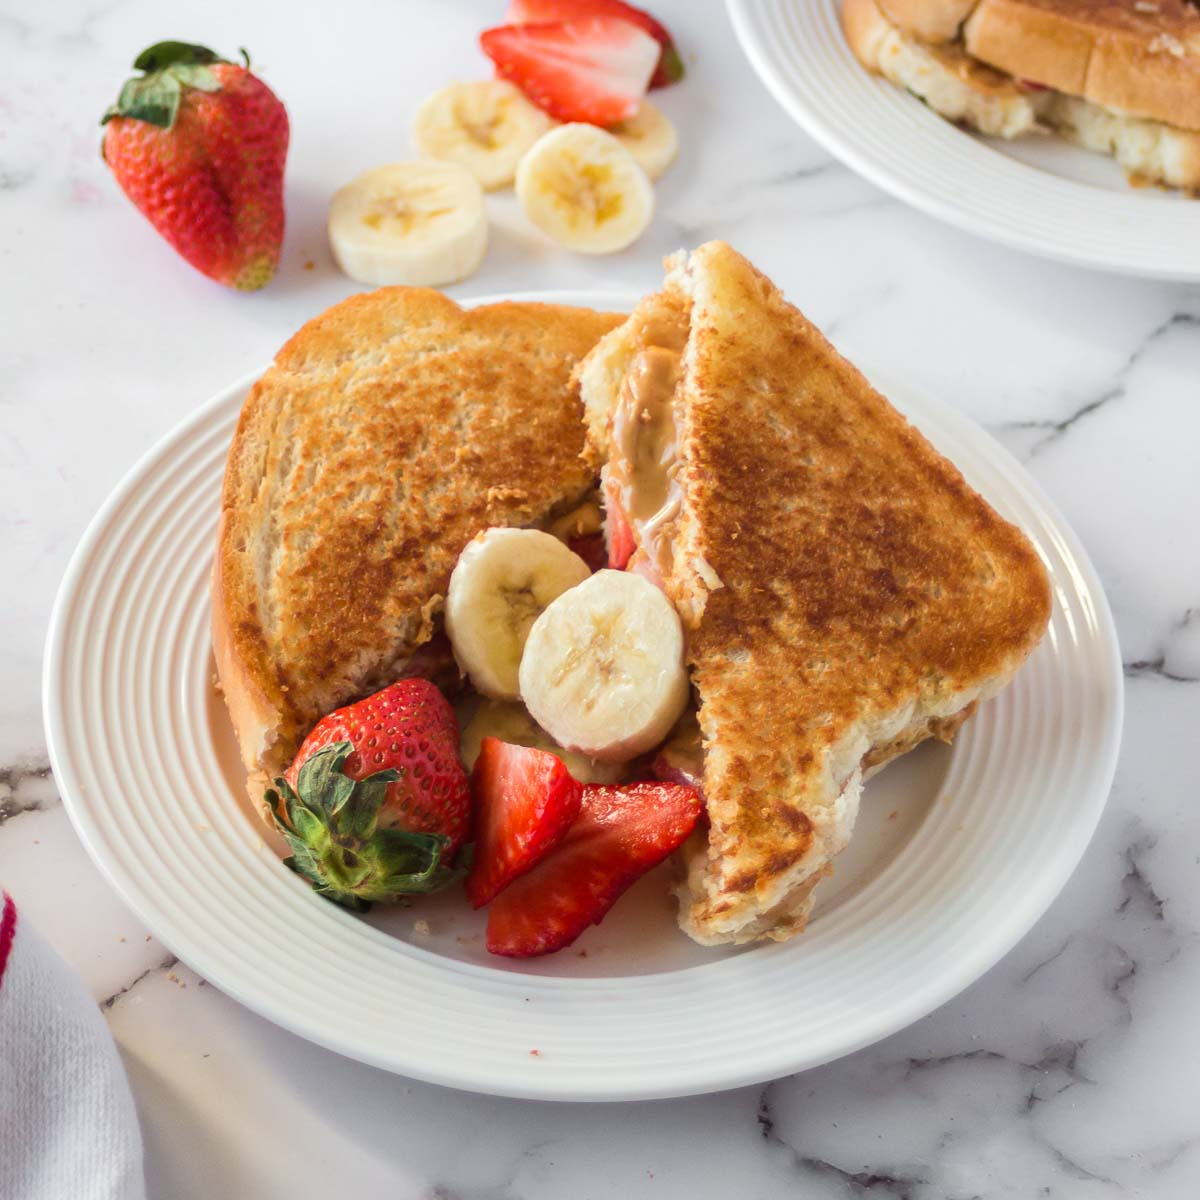 Grilled peanut butter sandwich sliced on a plate with fresh strawberries and banana.